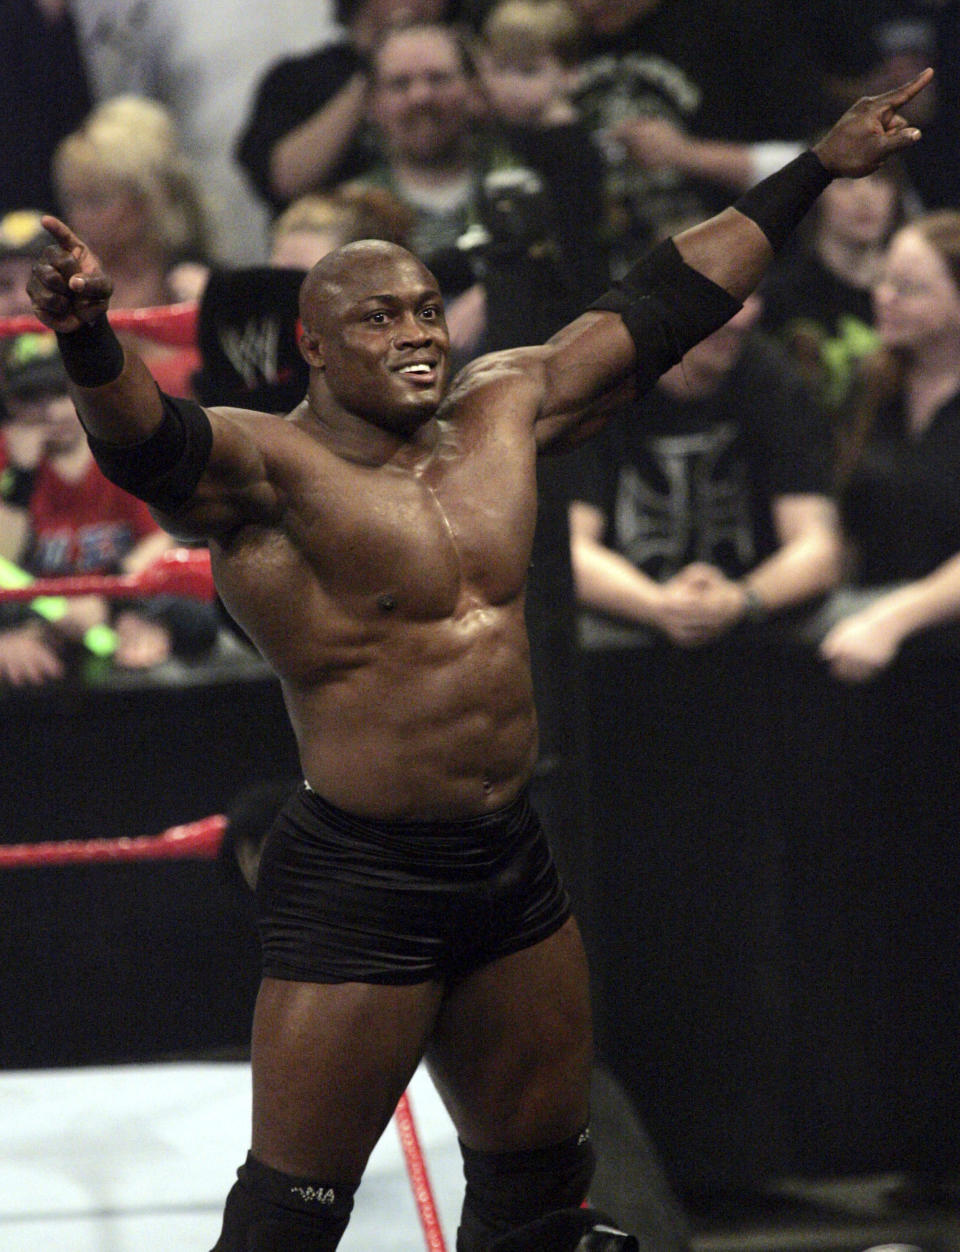 FILE - WWE wrestler Bobby Lashley celebrates after defeating Chris Masters during a match in Indianapolis, in this Monday, March 19, 2007, file photo. Fifty-four 54-year-old Bill Goldberg returns for his second match of the year when he challenges Lashley for the WWE title Saturday night, Aug. 21, 2021, at SummerSlam at Allegiant Stadium. (AP Photo/Tom Strattman, File)